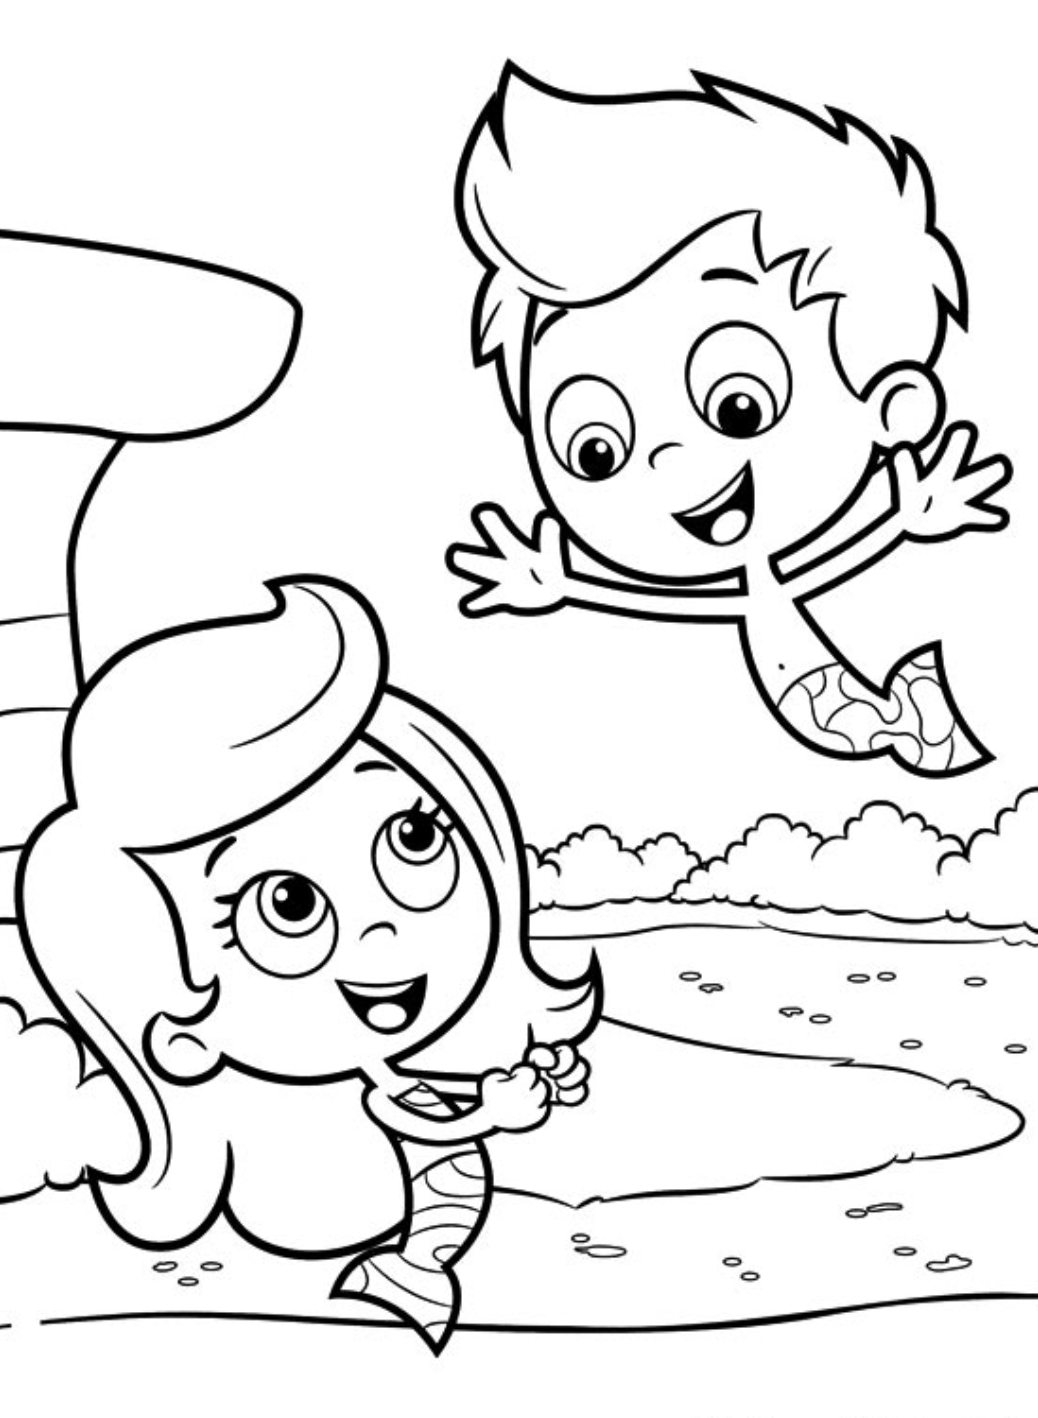 underwater bubbles coloring pages - photo#11